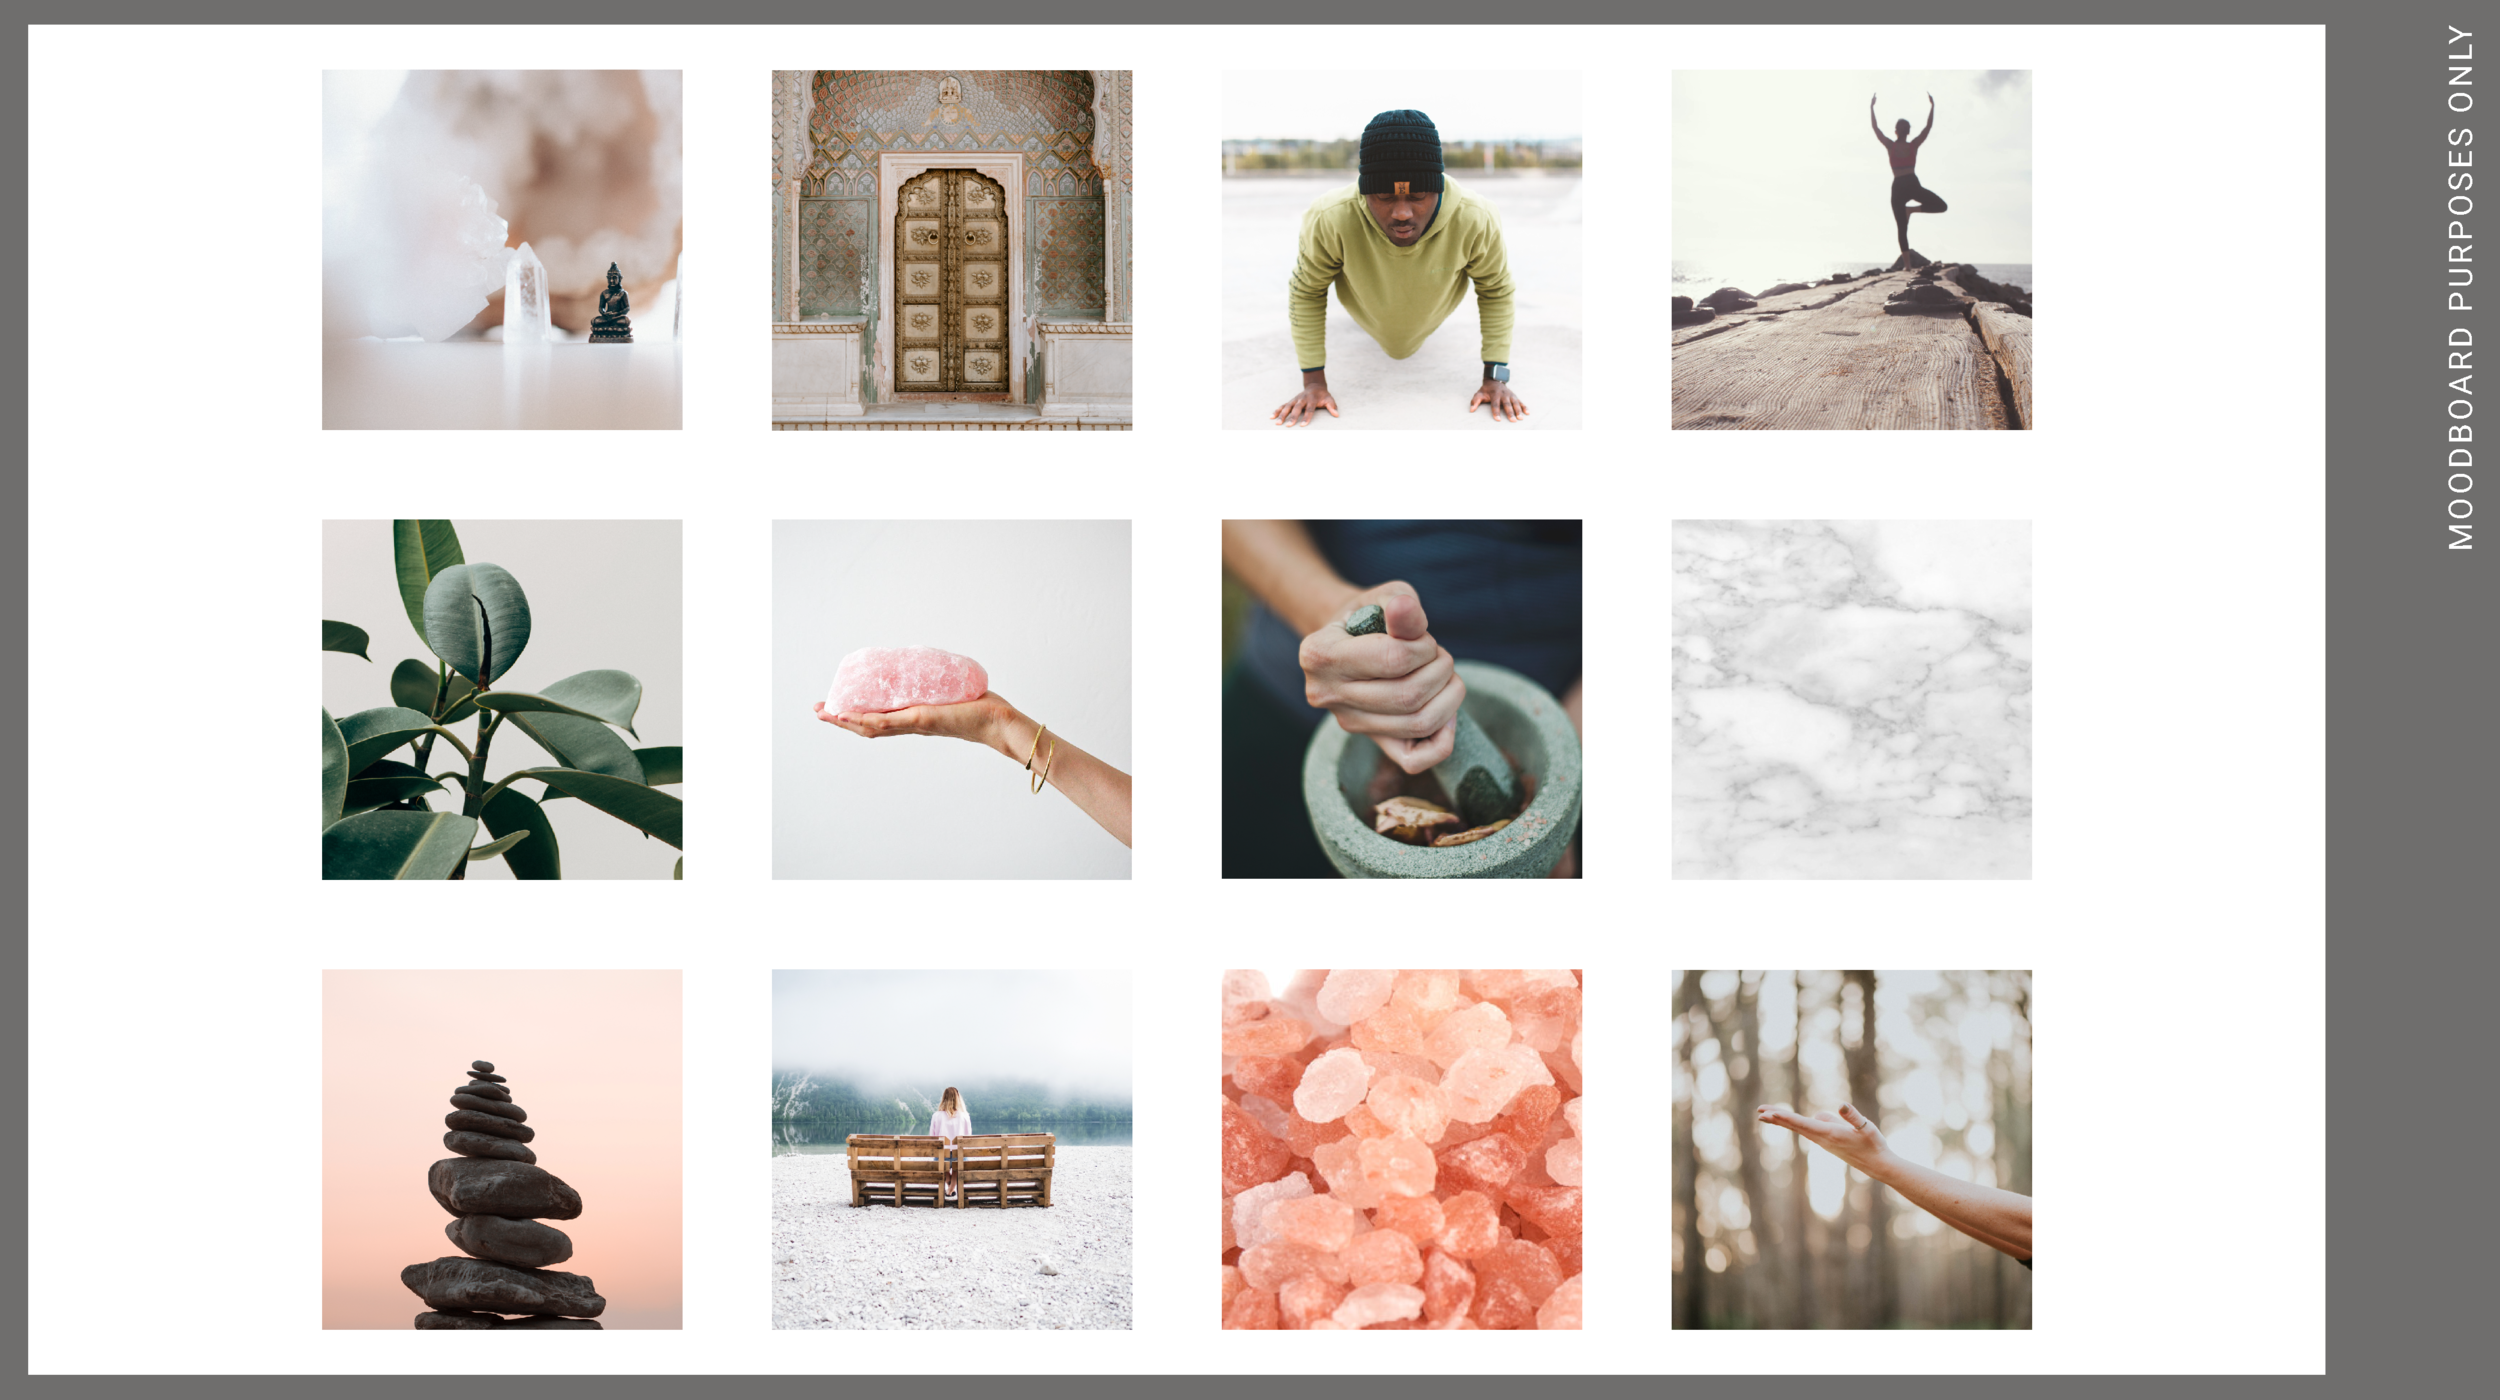 Moodboard Imagery